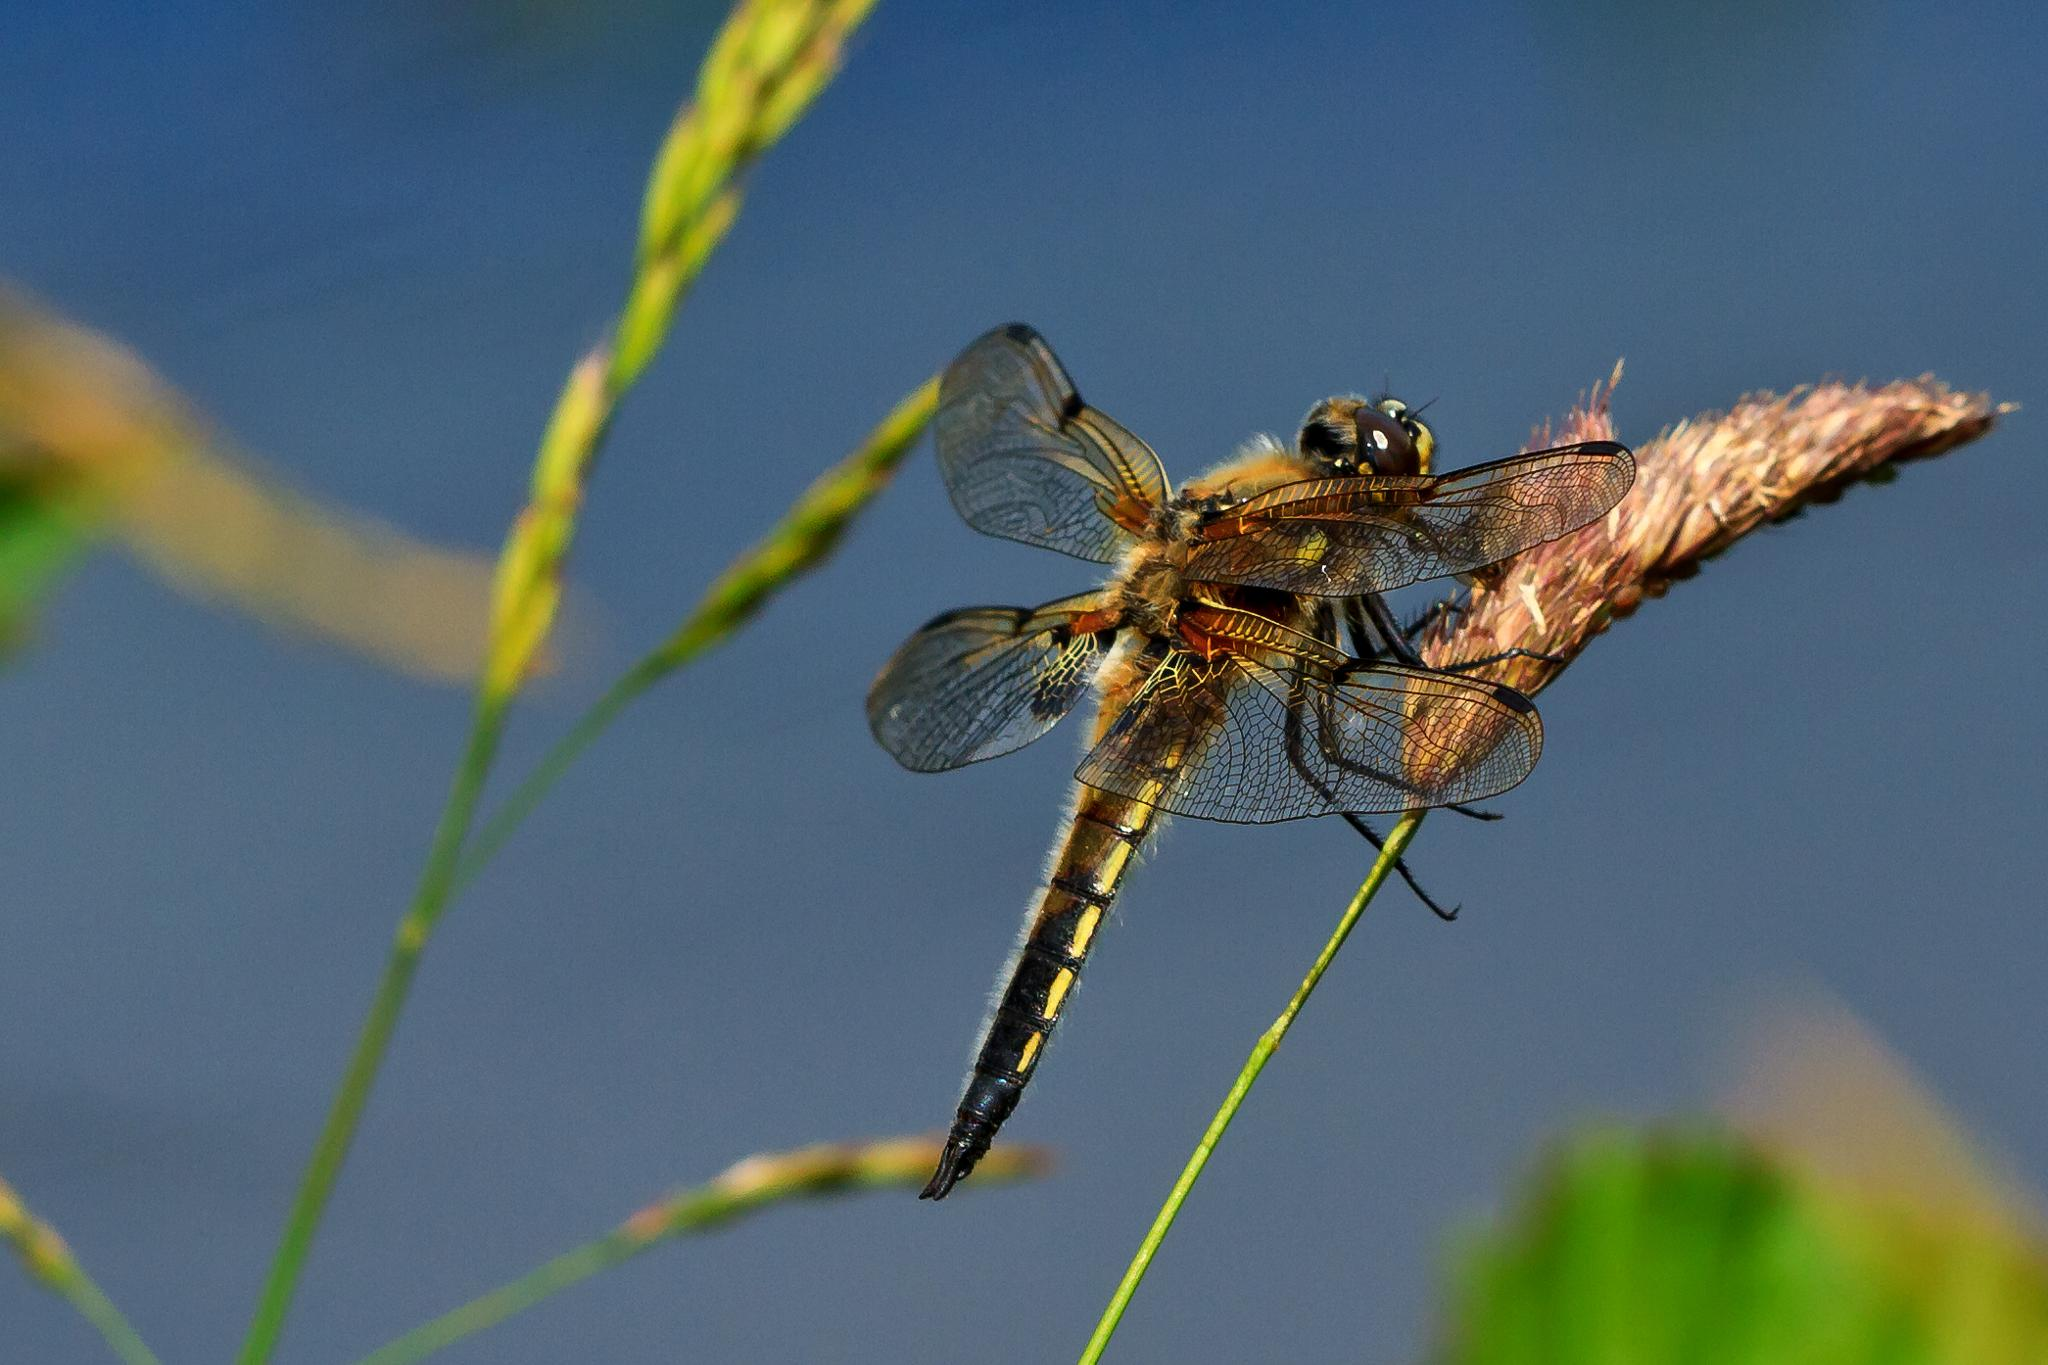 Four-spotted Chaser by Steve Rawlings